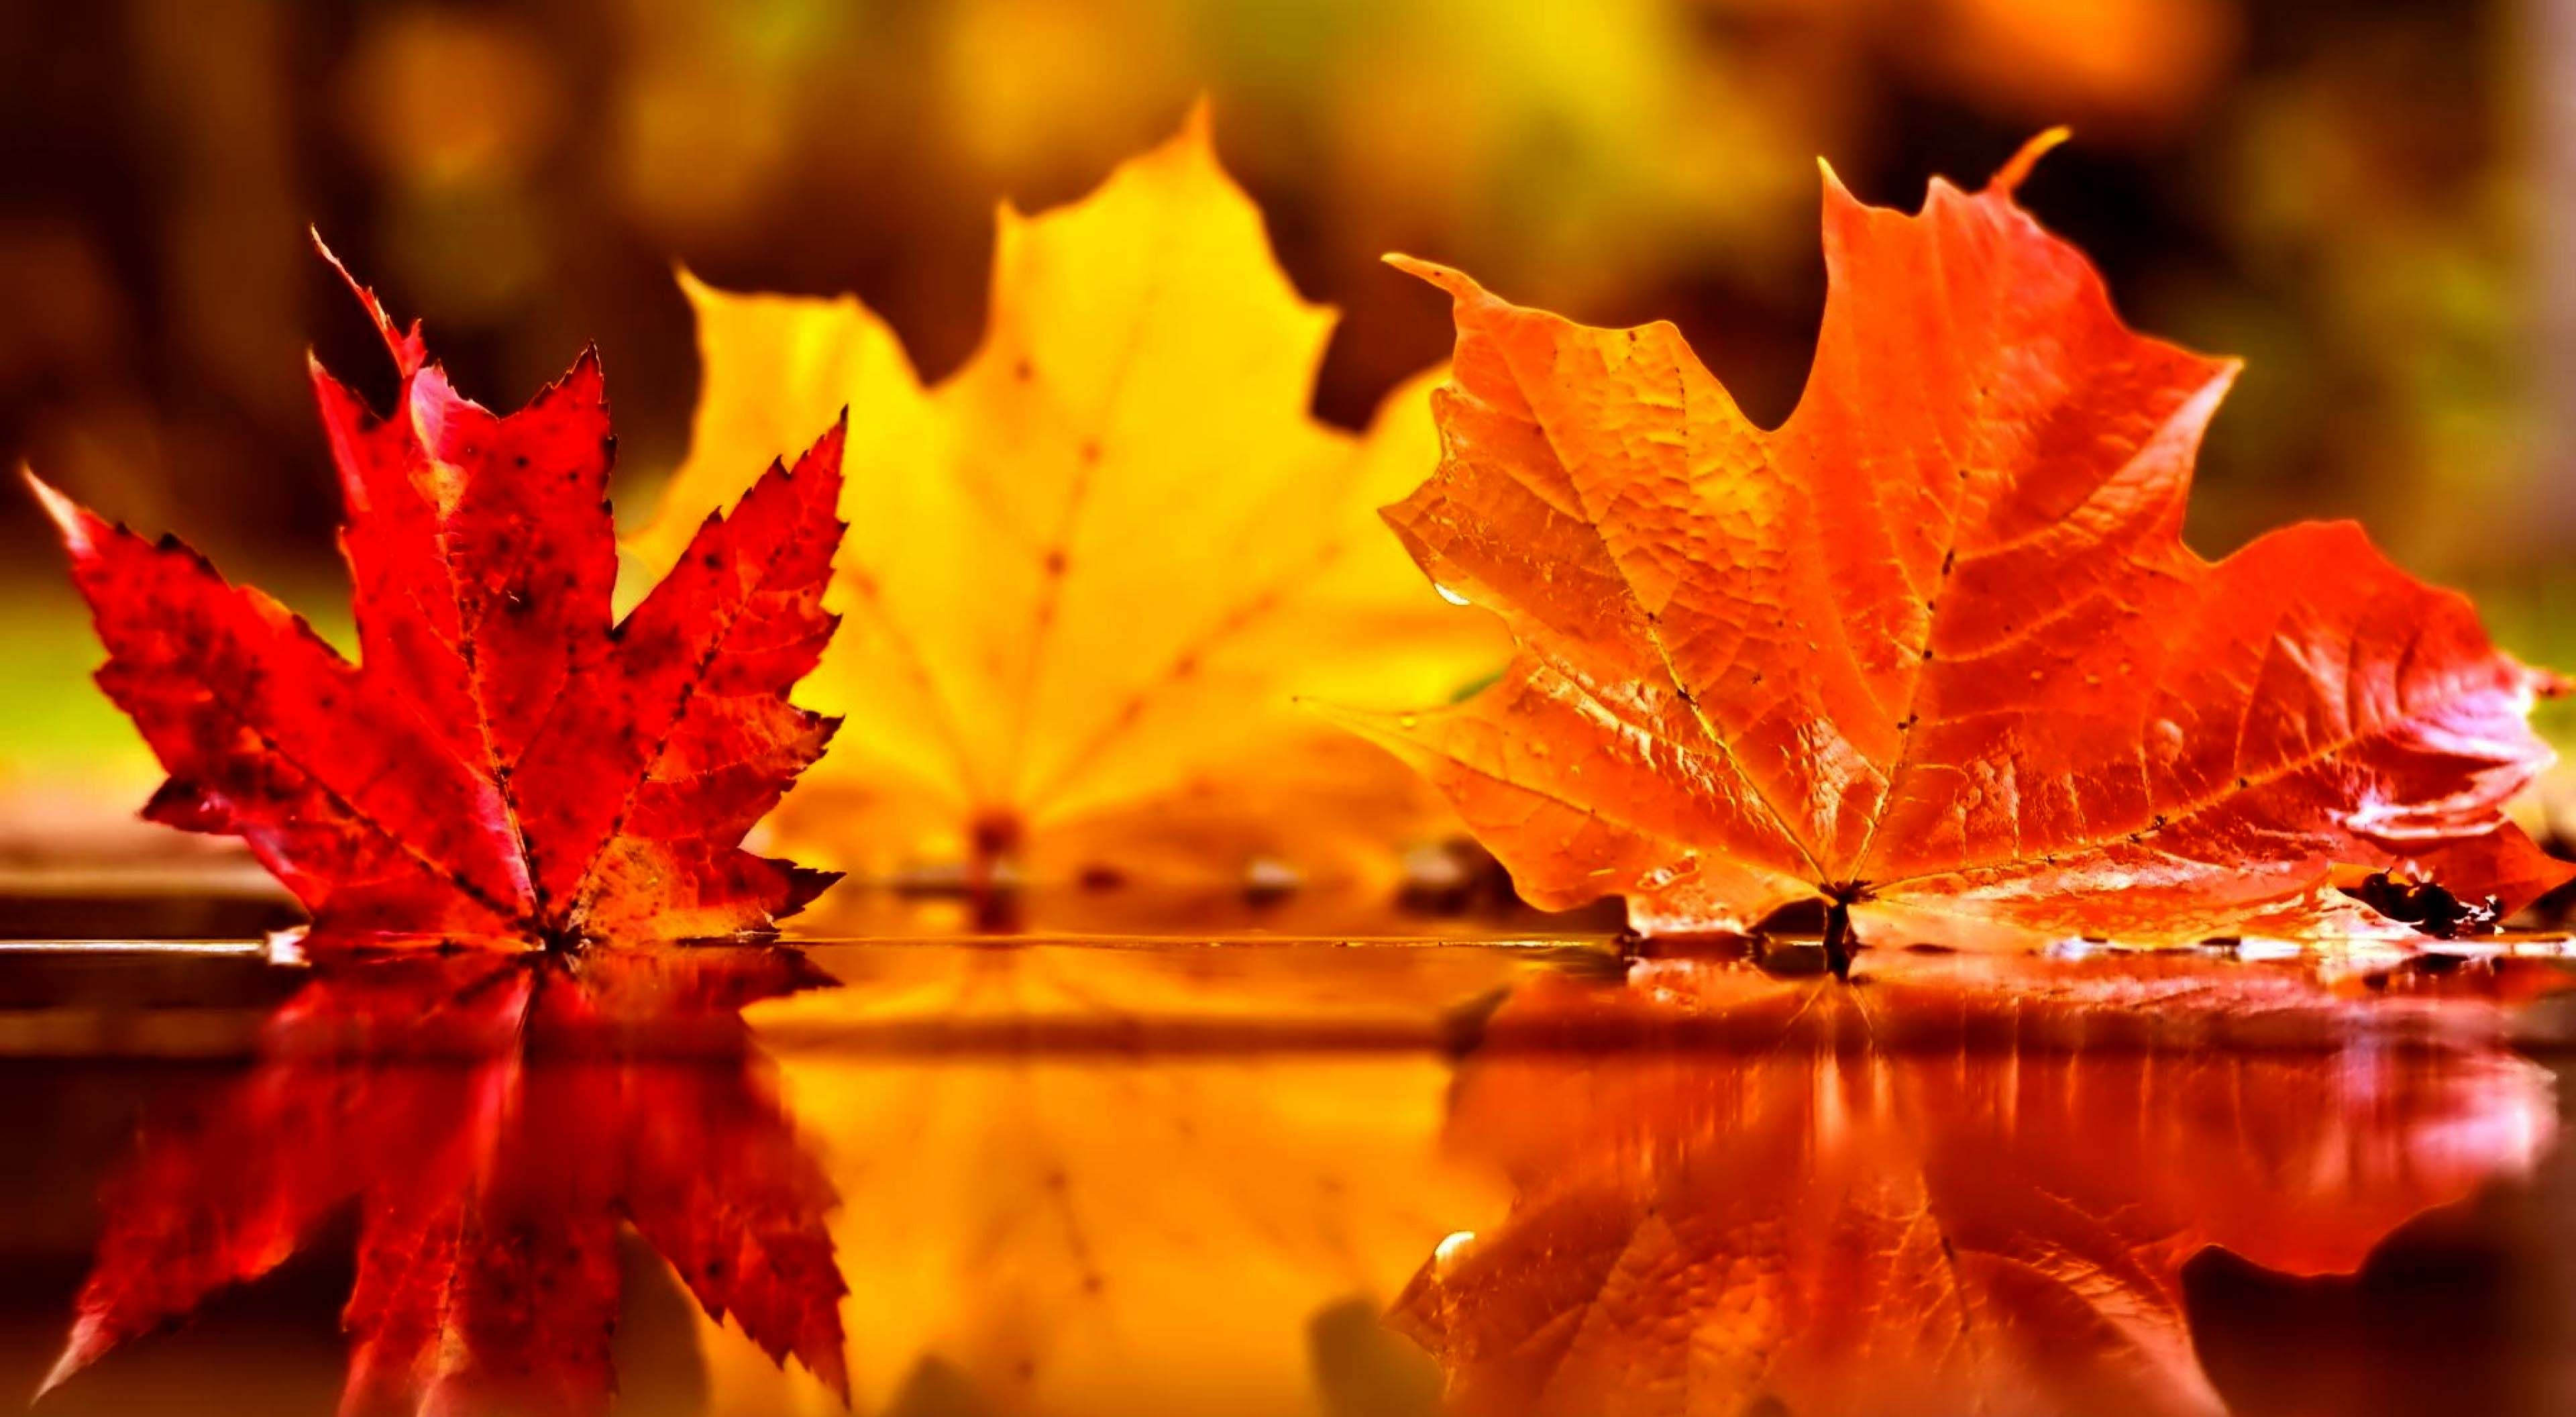 5 Simple Fall Date Ideas Her Campus Autumn Leaves Wallpaper November Wallpaper Fall Facebook Cover